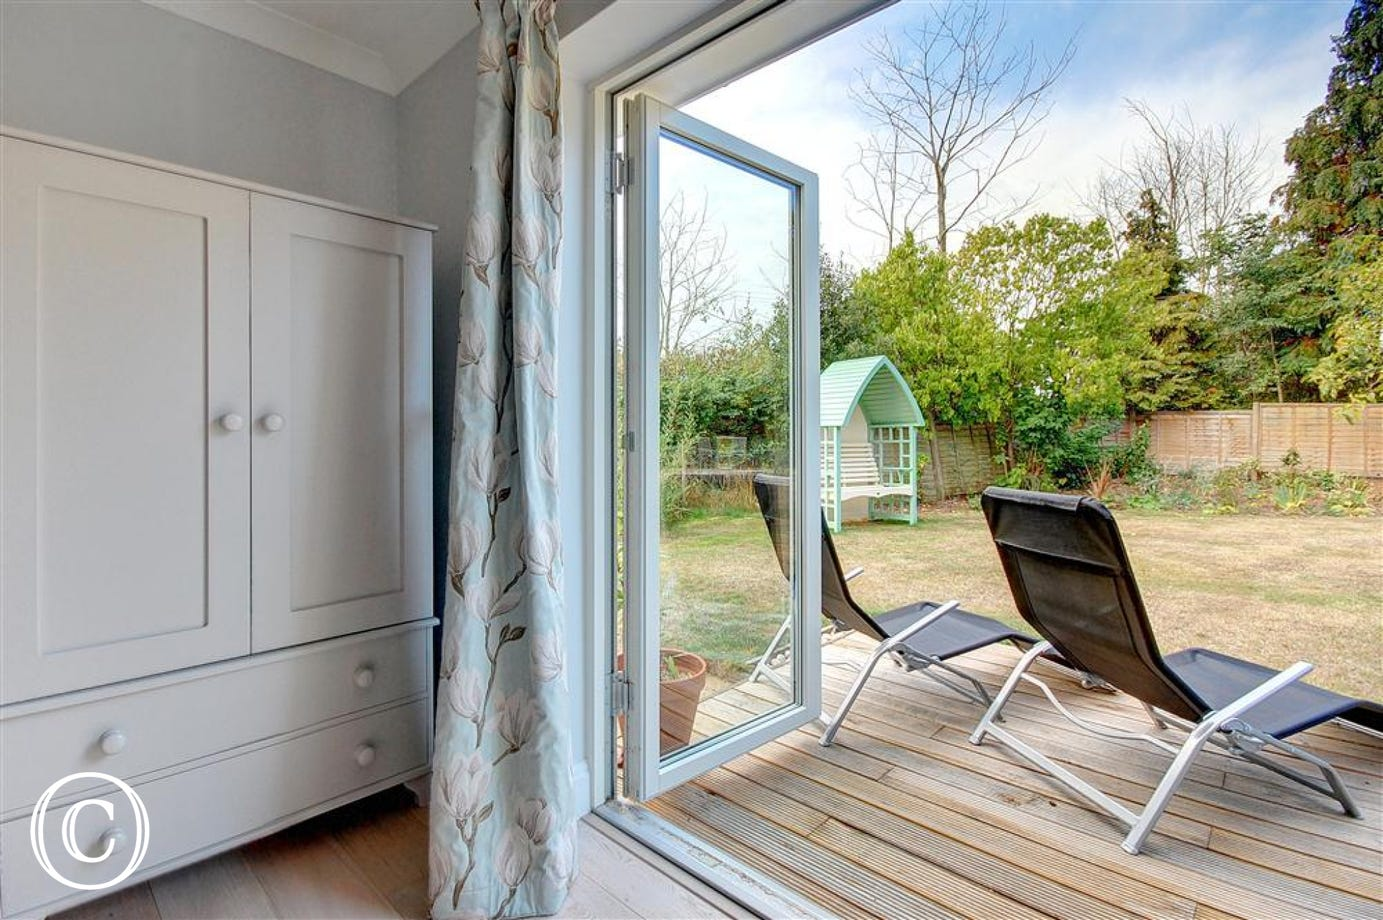 Start the day with a hit of fresh air when the bedroom patio doors are open.